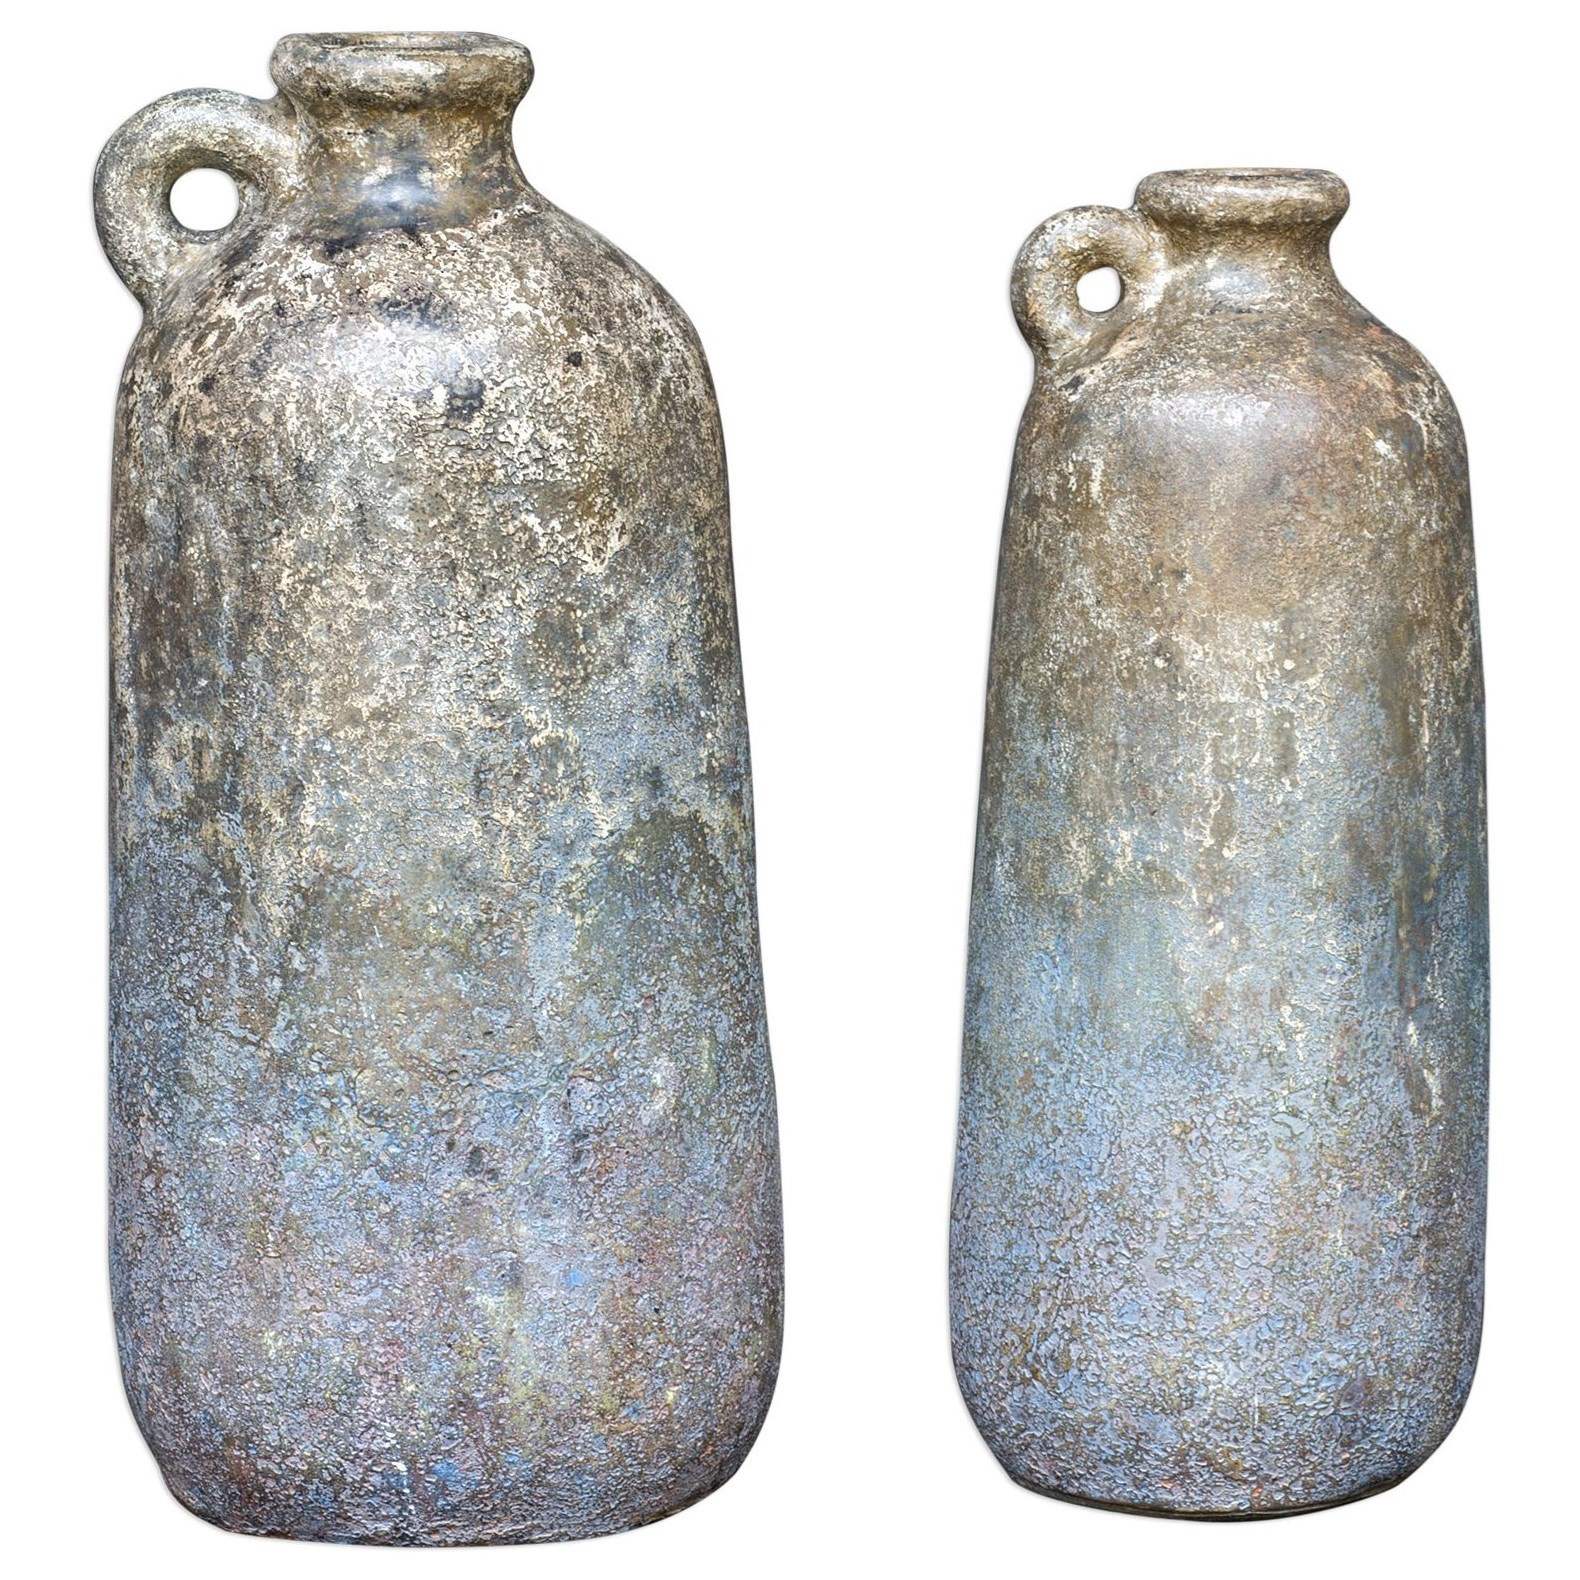 Accessories Ragini Terracotta Bottles, S/2 by Uttermost at Del Sol Furniture